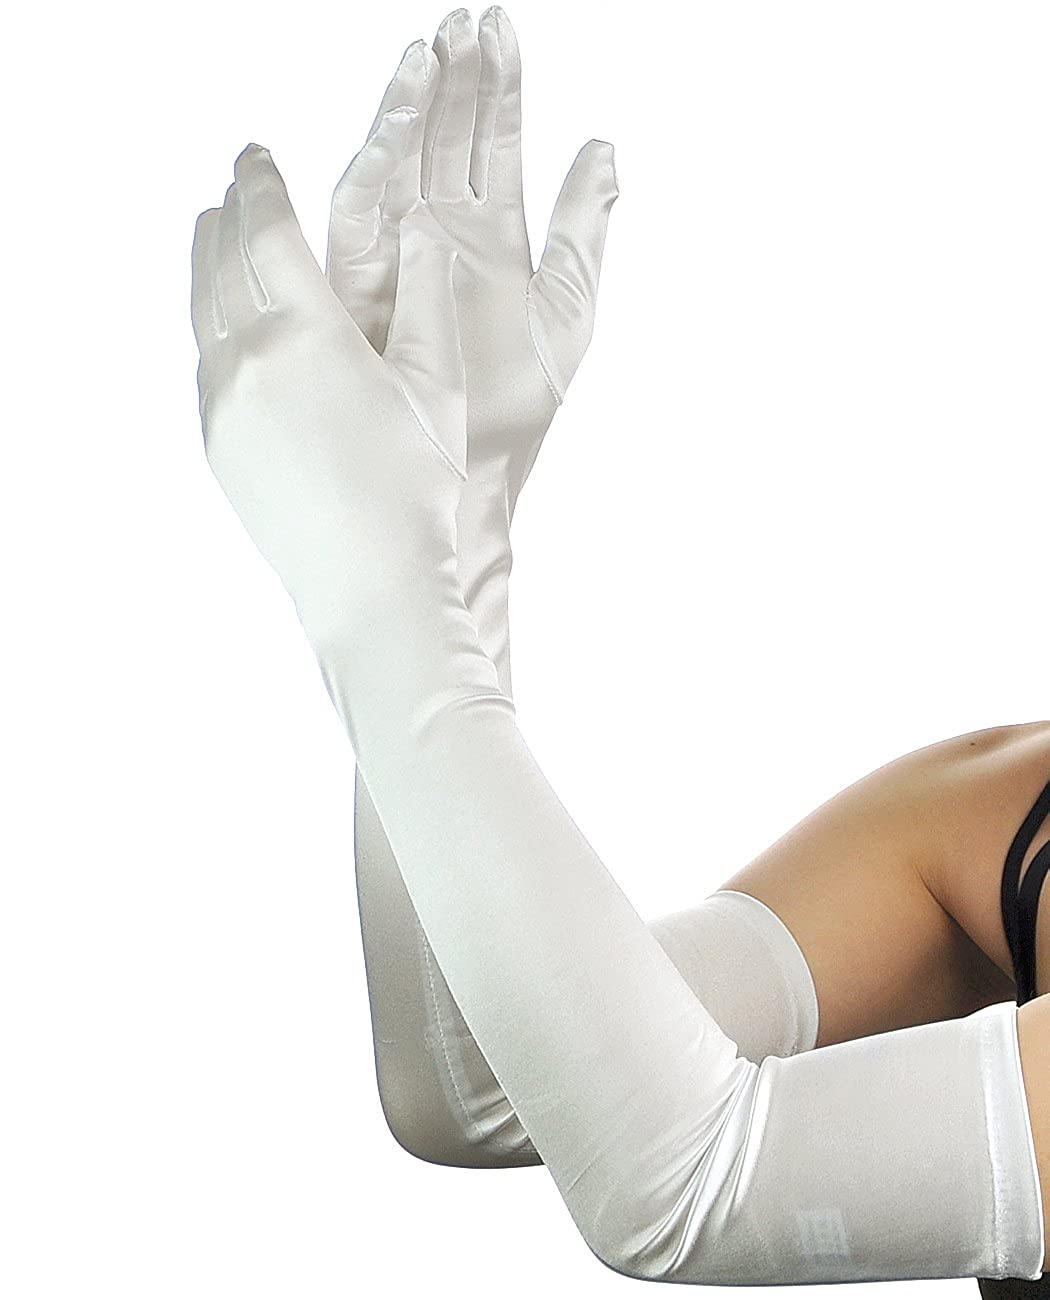 Women's Classic Satin Long Opera Length Costume Gloves (Available in 12 Colors) - DeluxeAdultCostumes.com